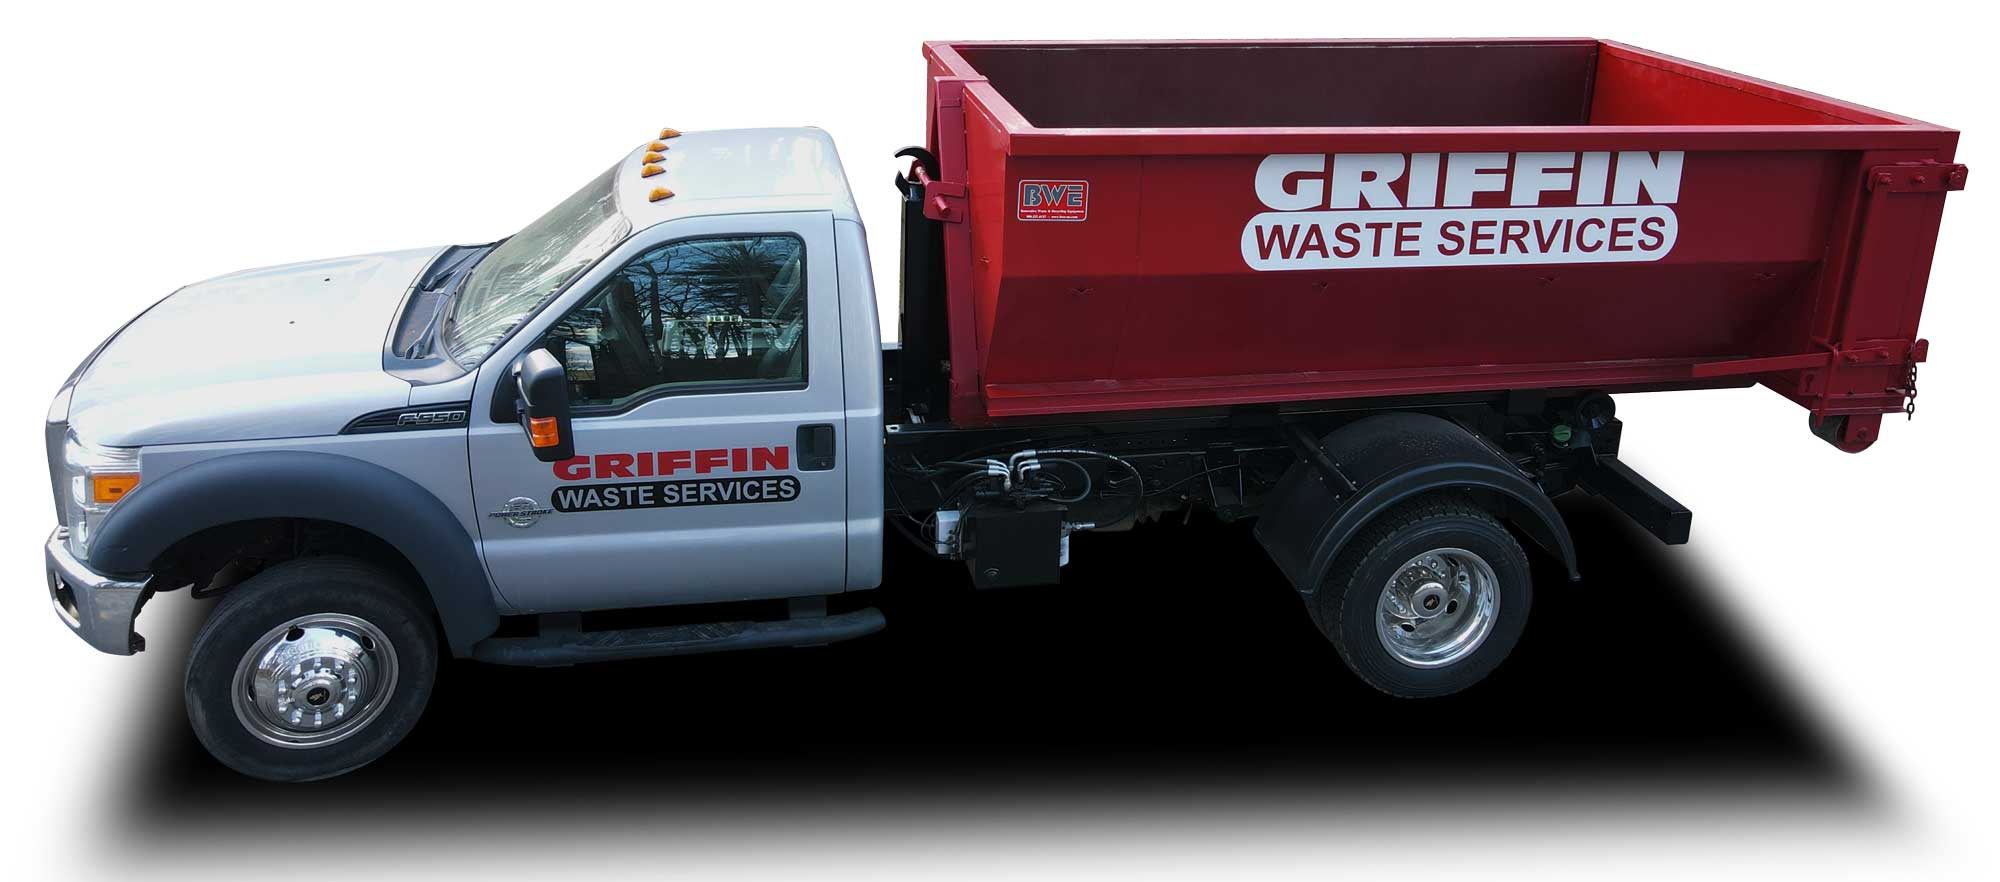 griffin_waste_dumpster_delivery_truck